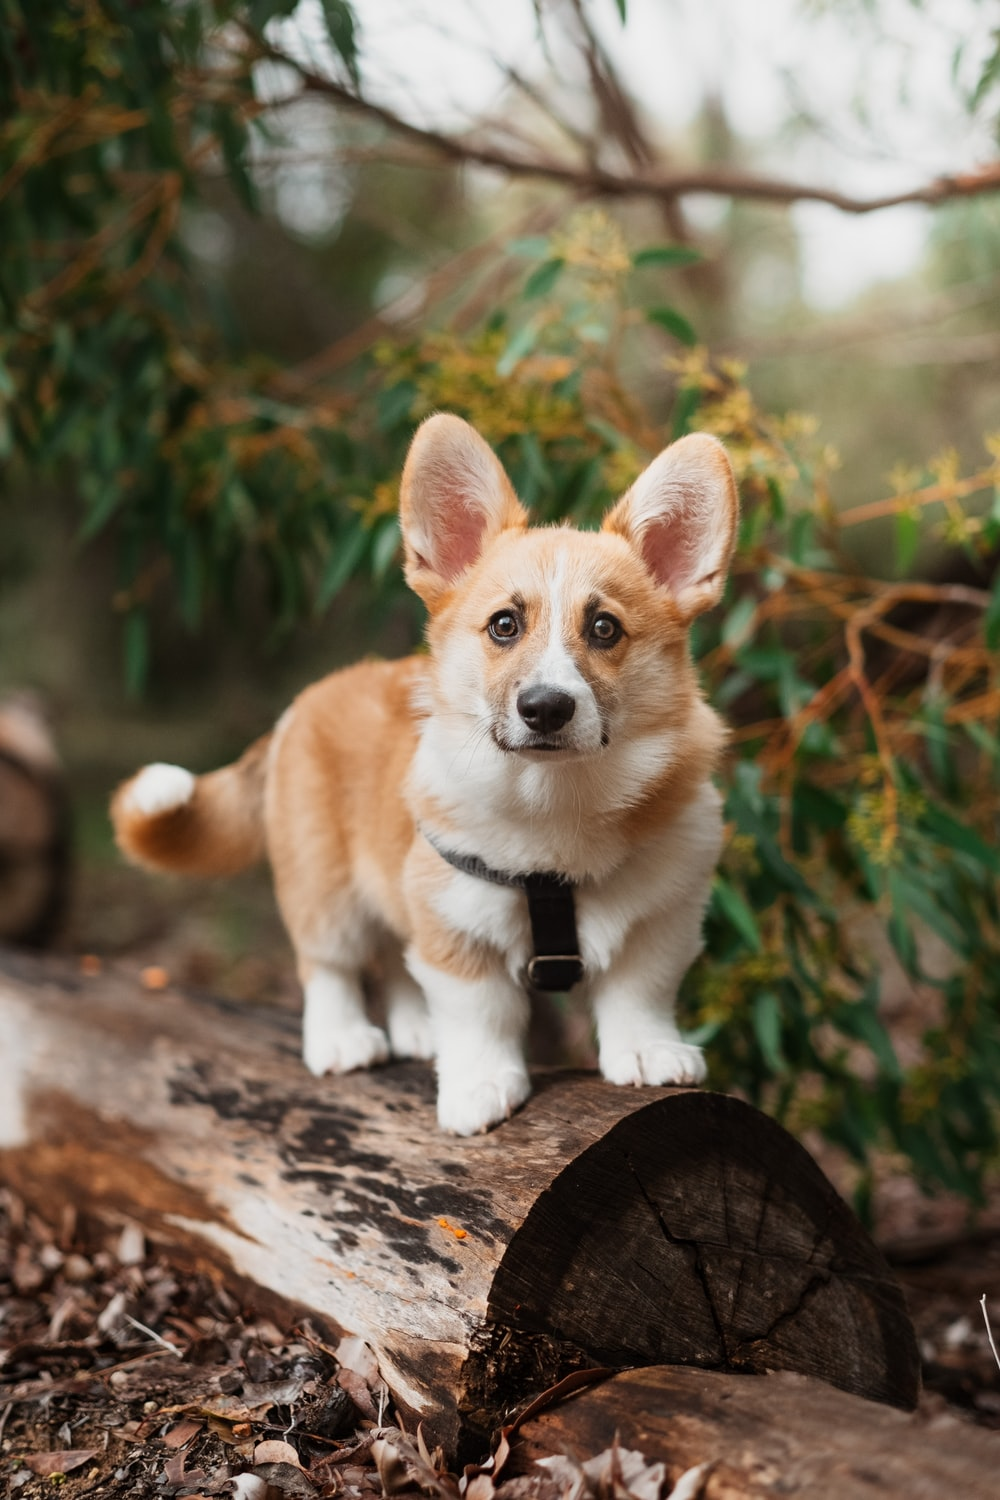 brown and white corgi puppy on brown wooden log during daytime